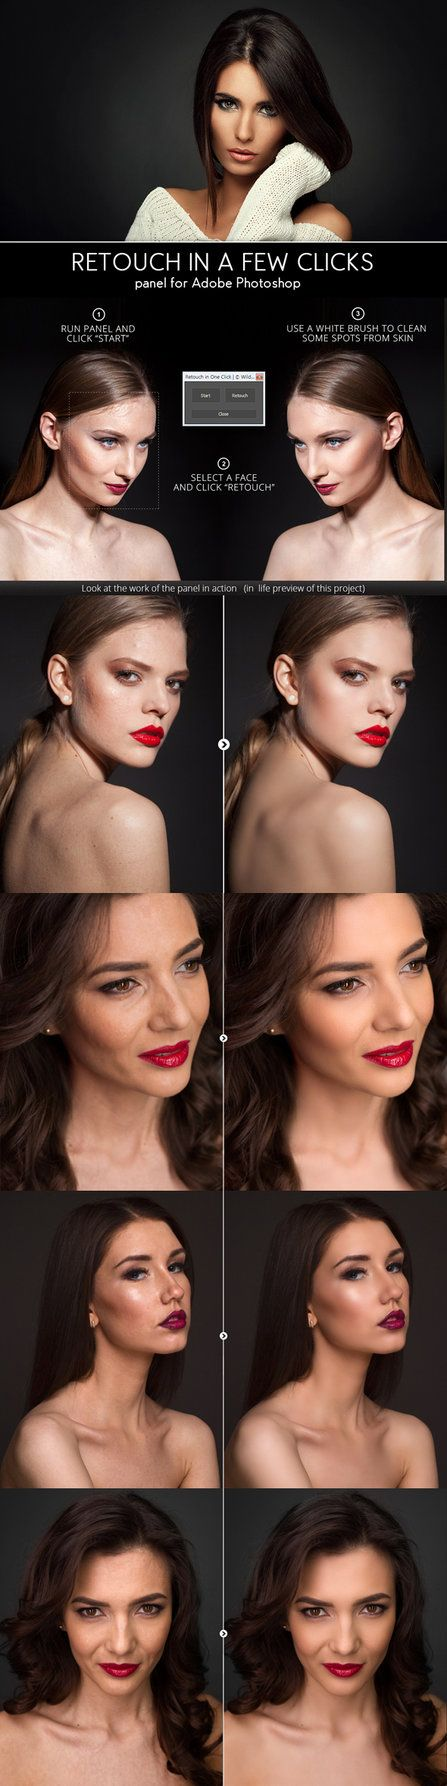 DOWNLOAD:  goo.gl/Z4zPuh Features:Quickt retouch by two color masks Auto Dodge & Burn Digital Texture Smart Contrast Run by hotkey Easy installation Requirements:Panel available for...